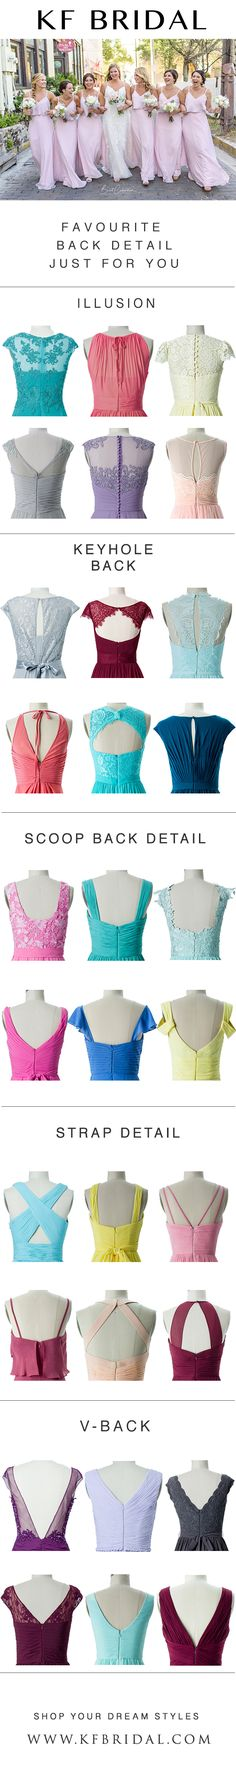 Check Out Selection of Back Details! The March Mayhem Sale up to 50% OFF+ FREE SHIPPING!